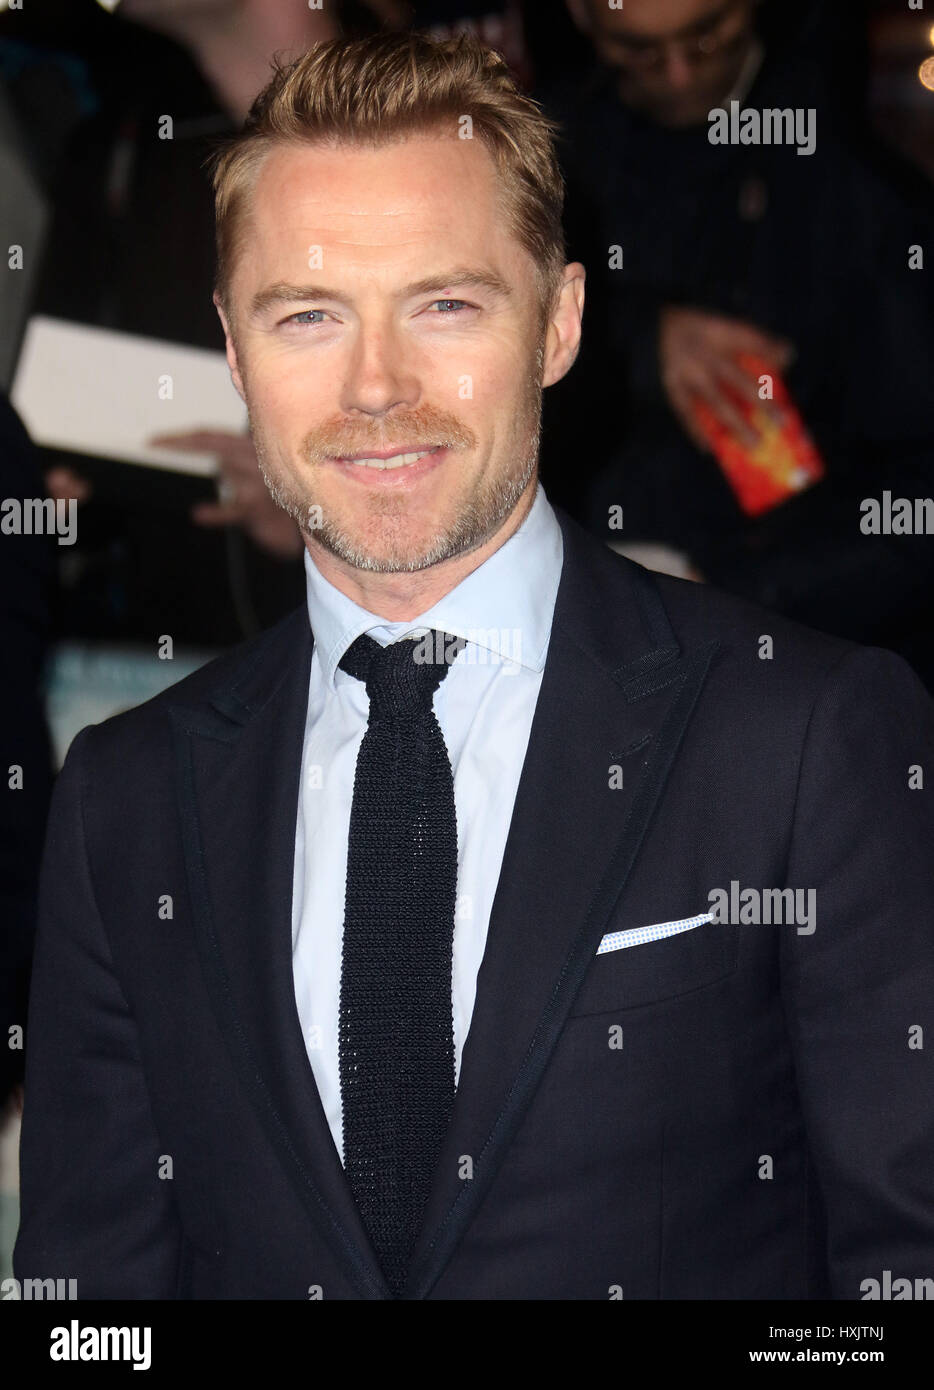 Mar 16, 2017 - Ronan Keating attending Another Mother's Son' World Premiere, Odeon Leicester Square in London, - Stock Image